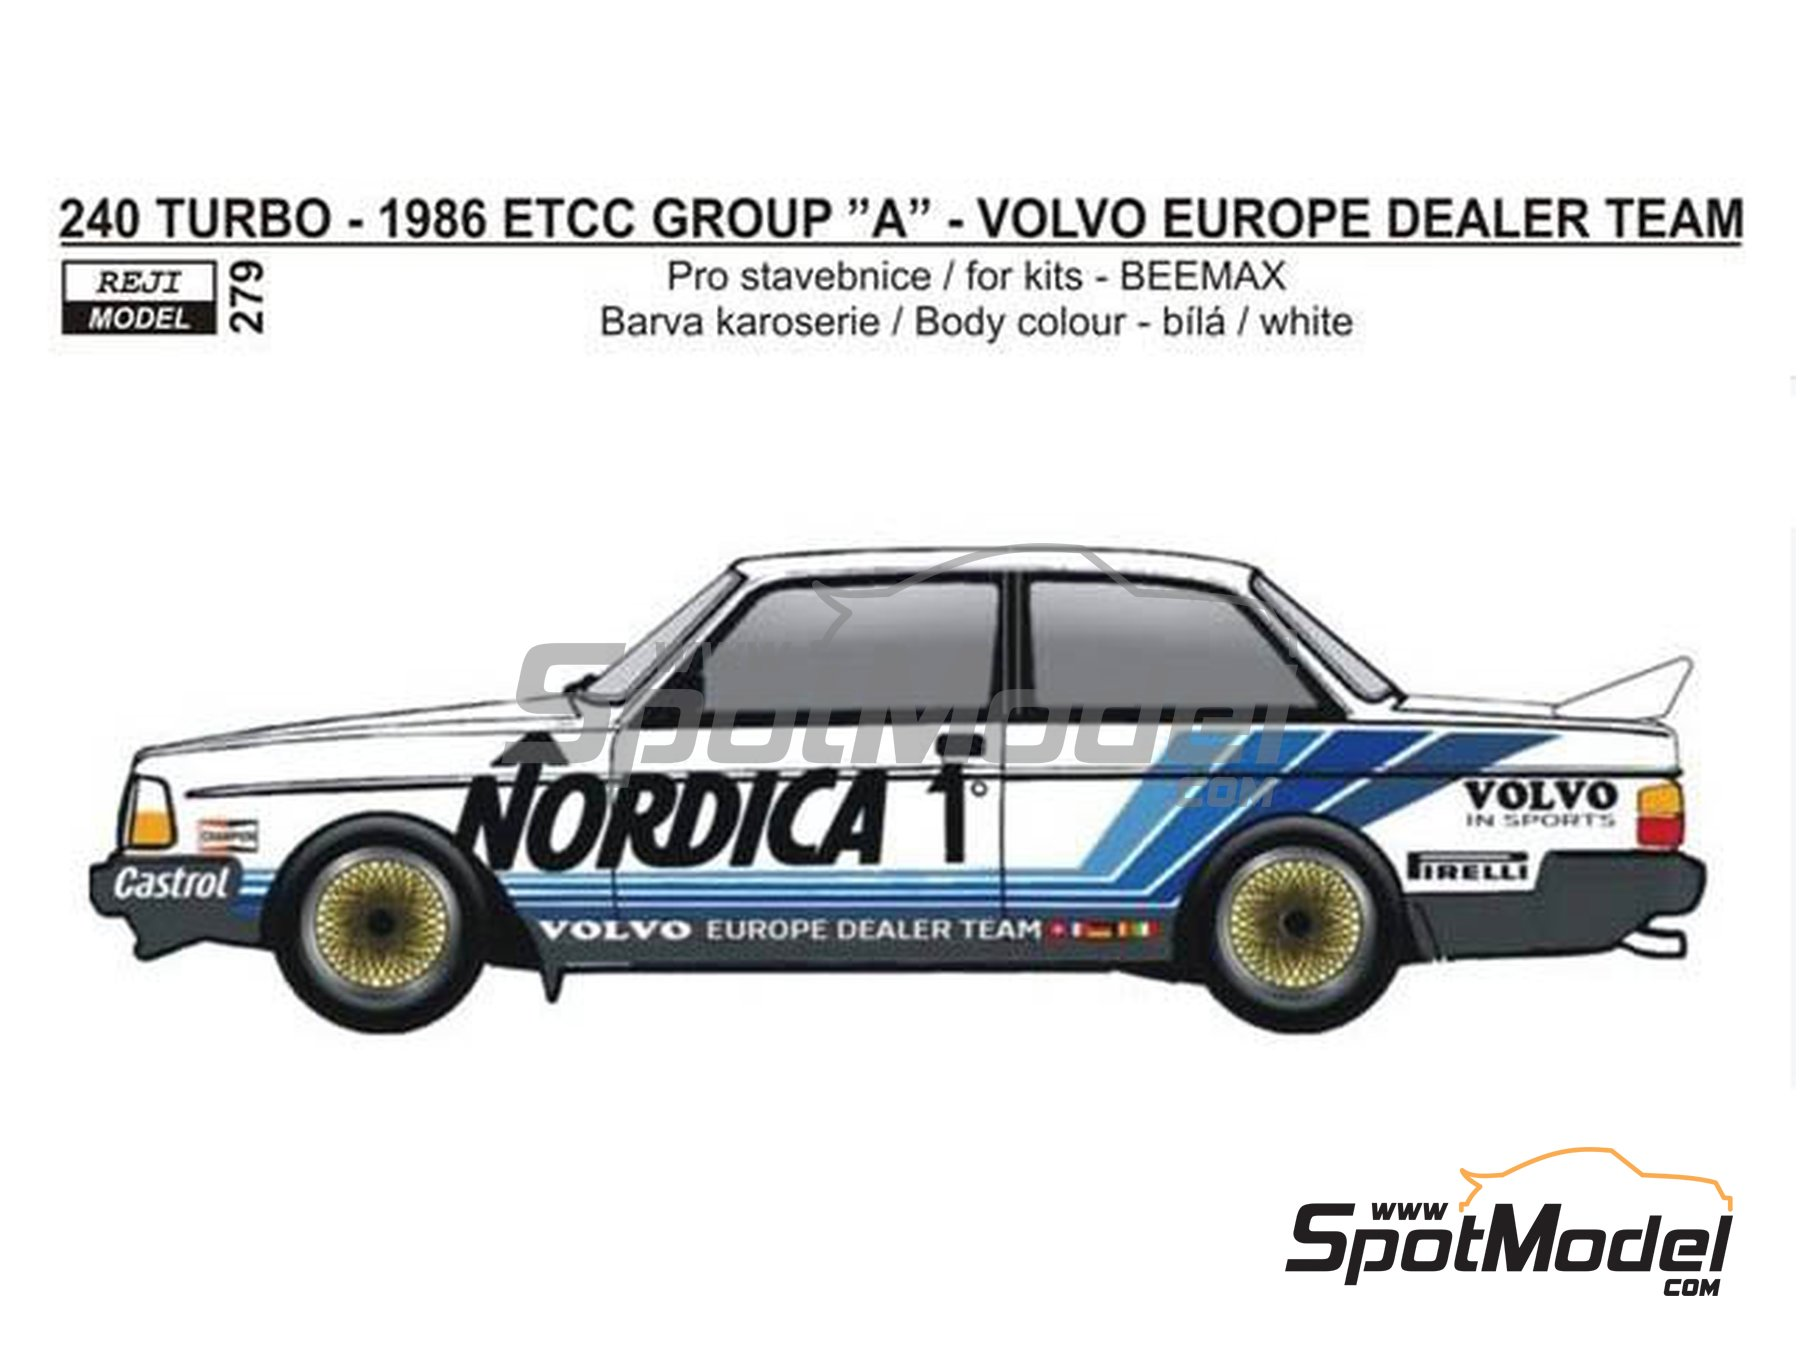 Image 1: Volvo 240 Turbo Volvo Europe Dealer Team - Campeonato Europeo de Turismos ETCC 1986 | Decoración en escala 1/24 fabricado por Reji Model (ref. REJI-279)